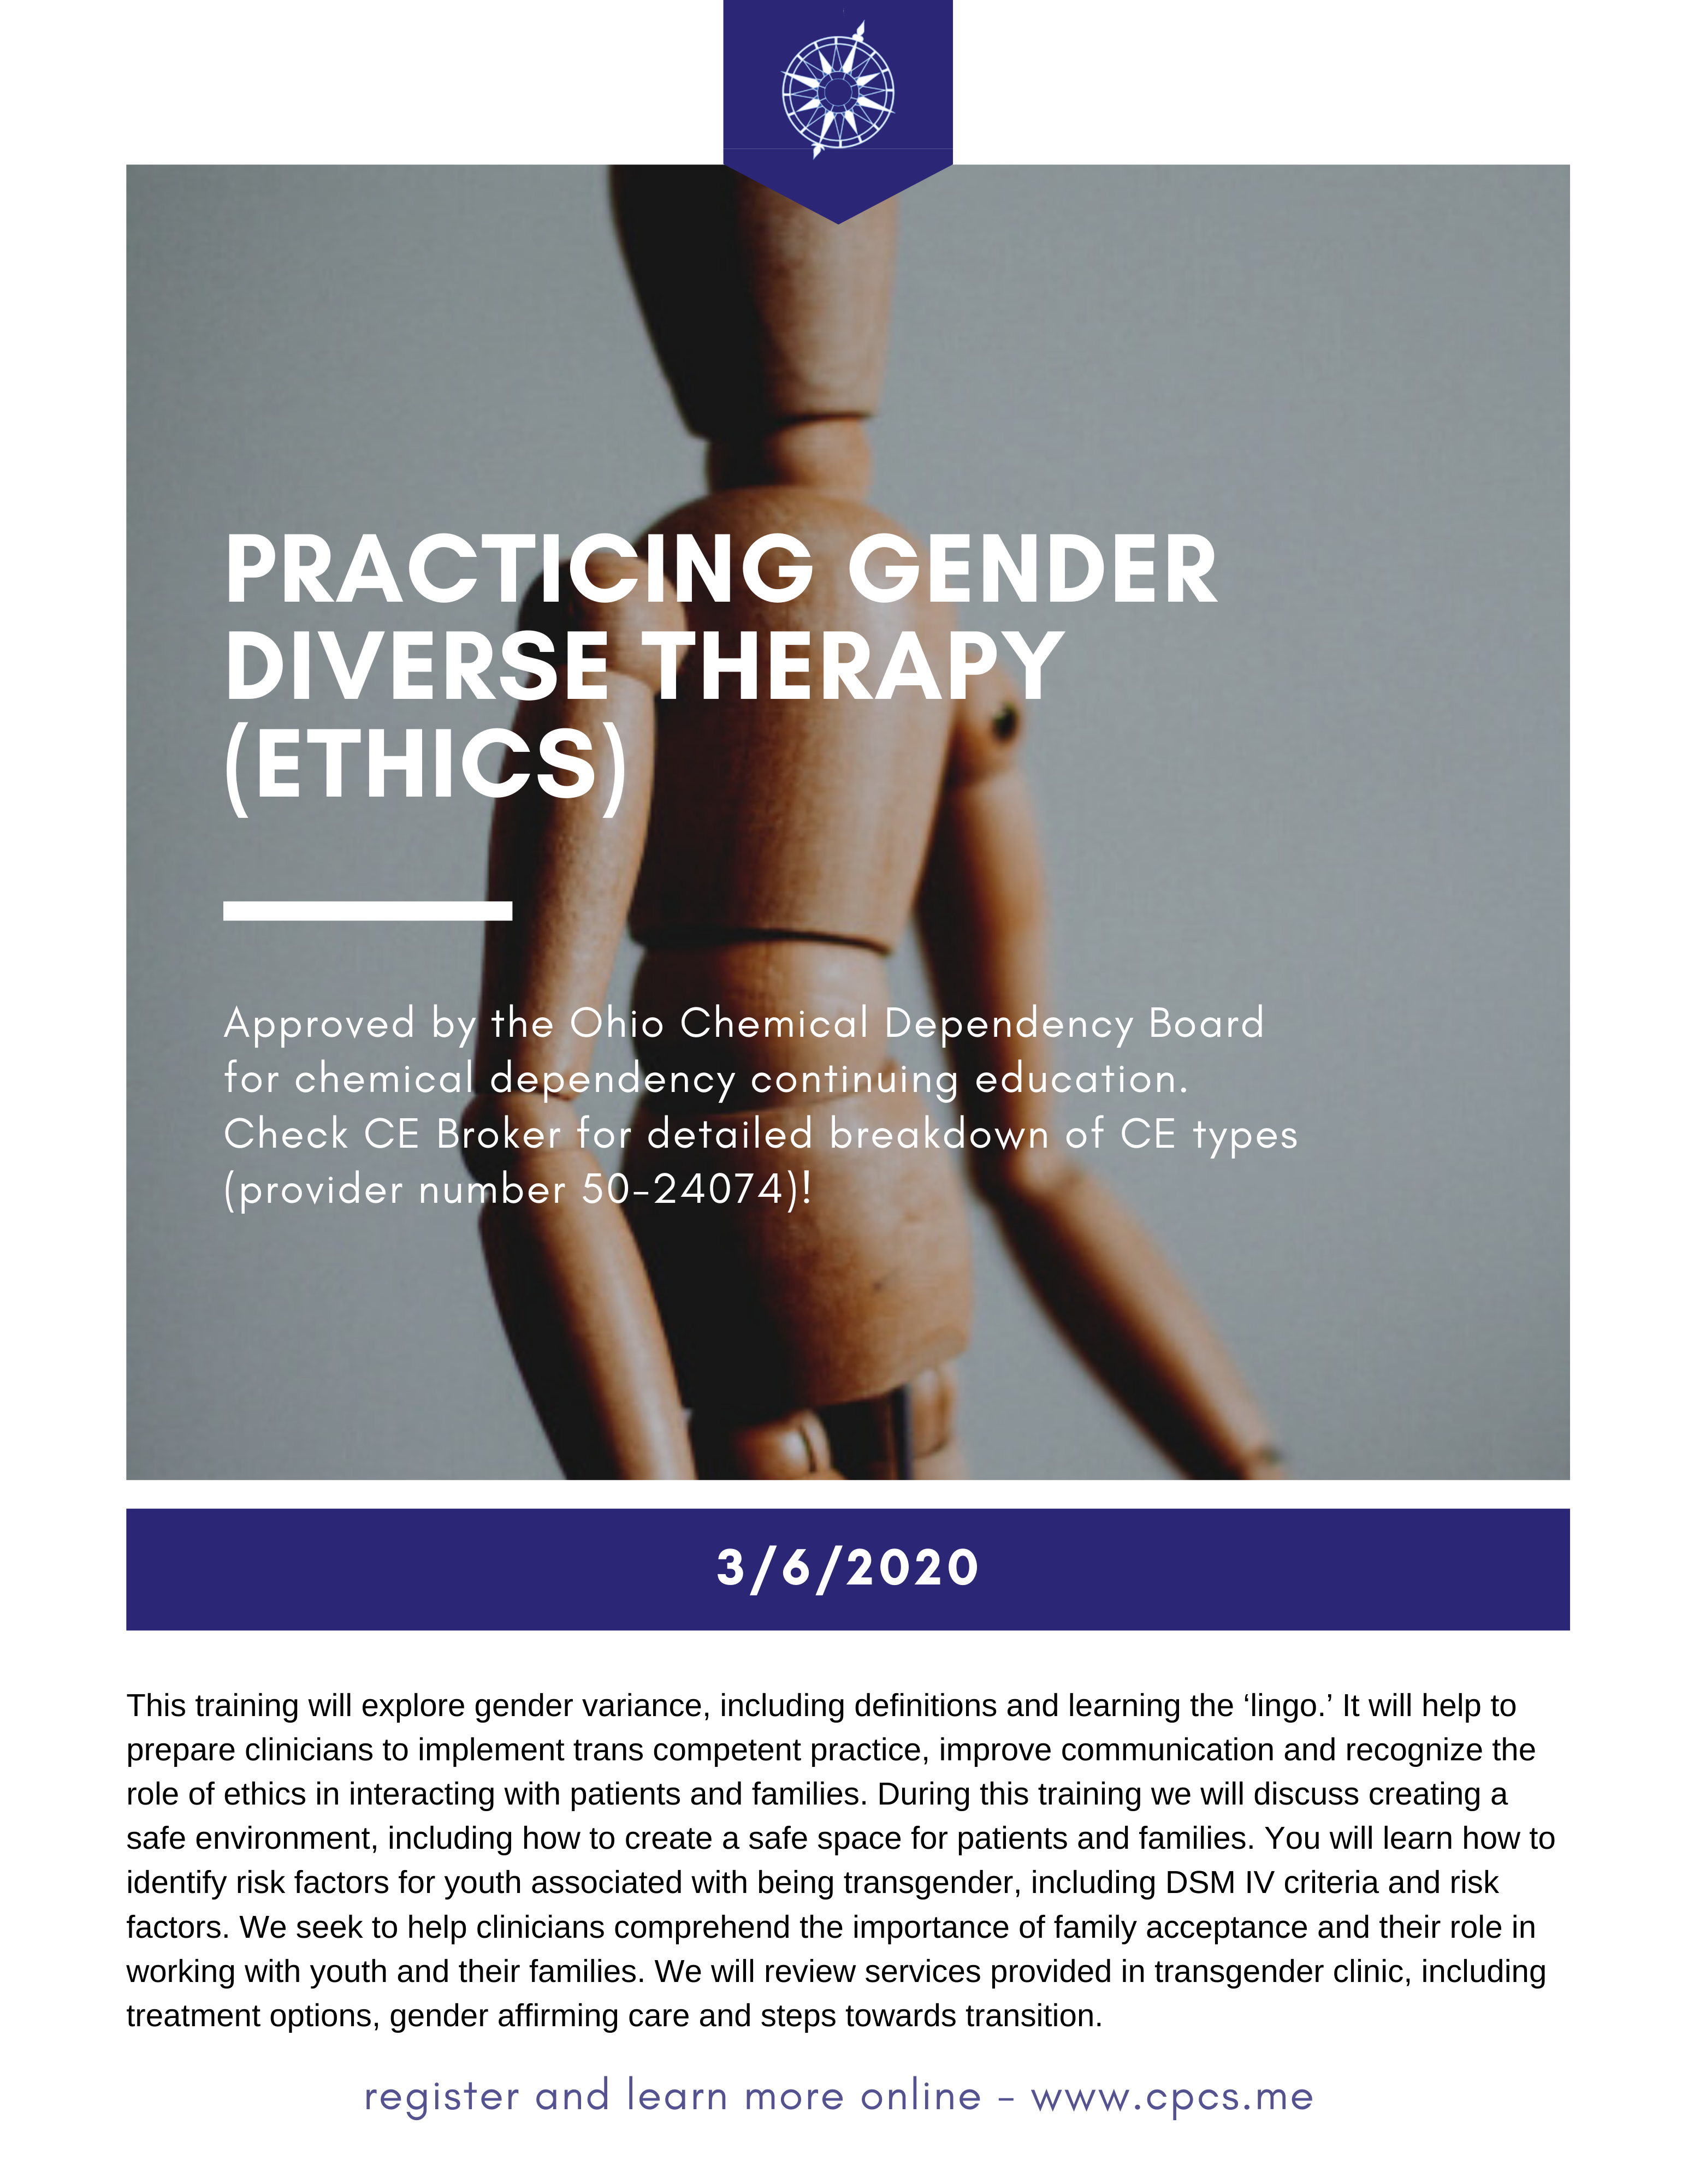 Practicing Gender Diverse Therapy (Ethics) in 2020